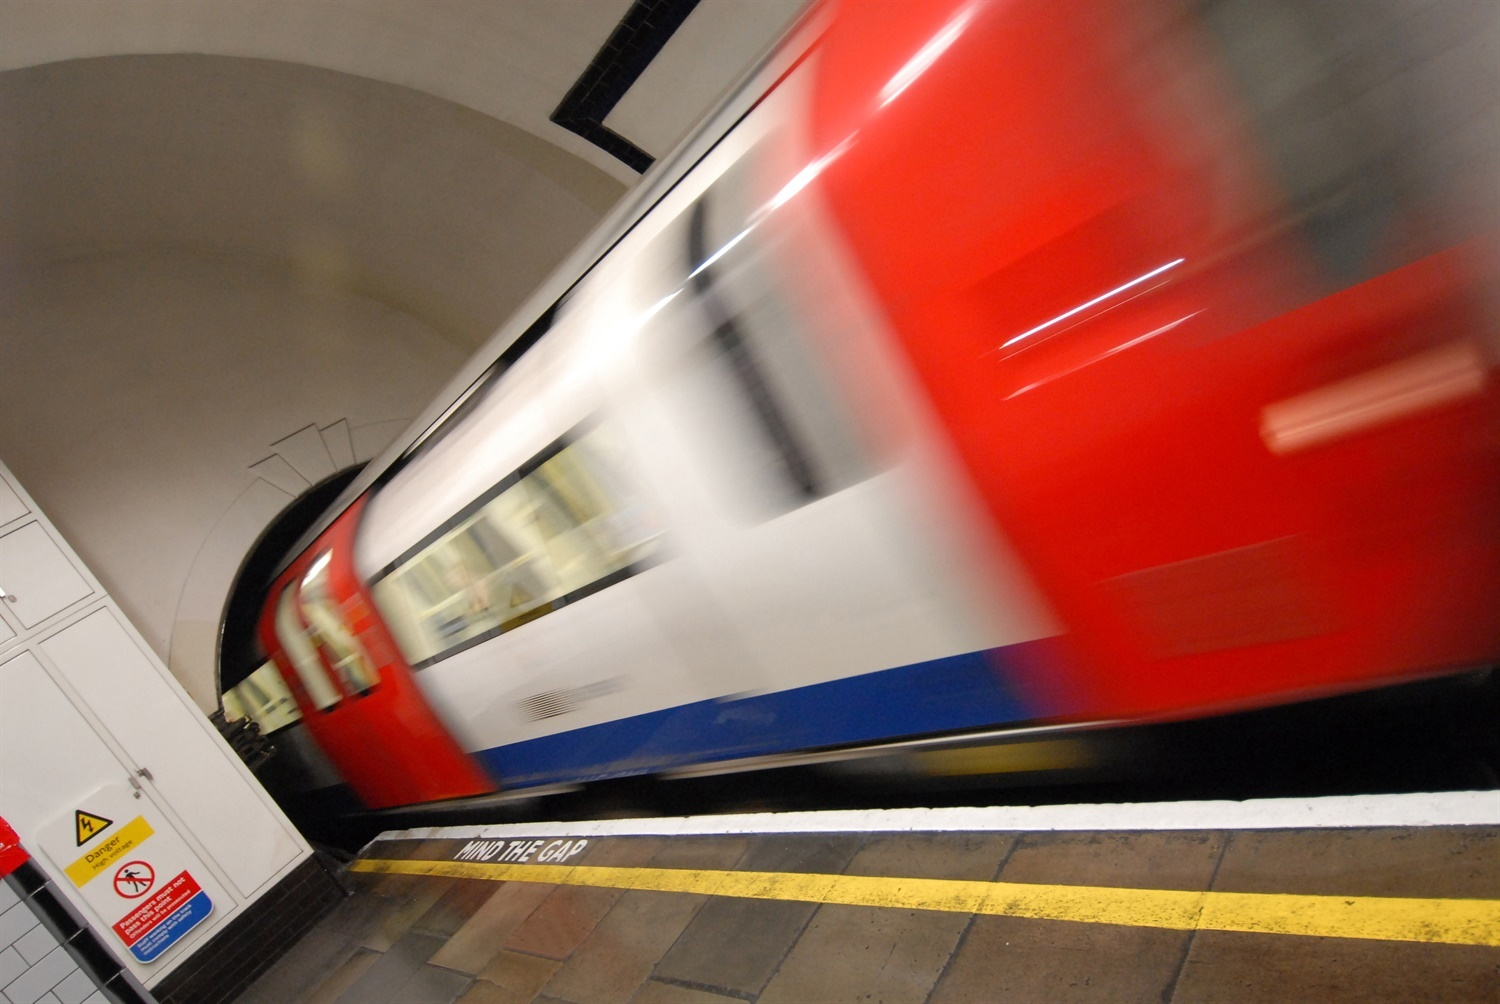 TfL still eyeing £700m annual savings in final 5-year business plan